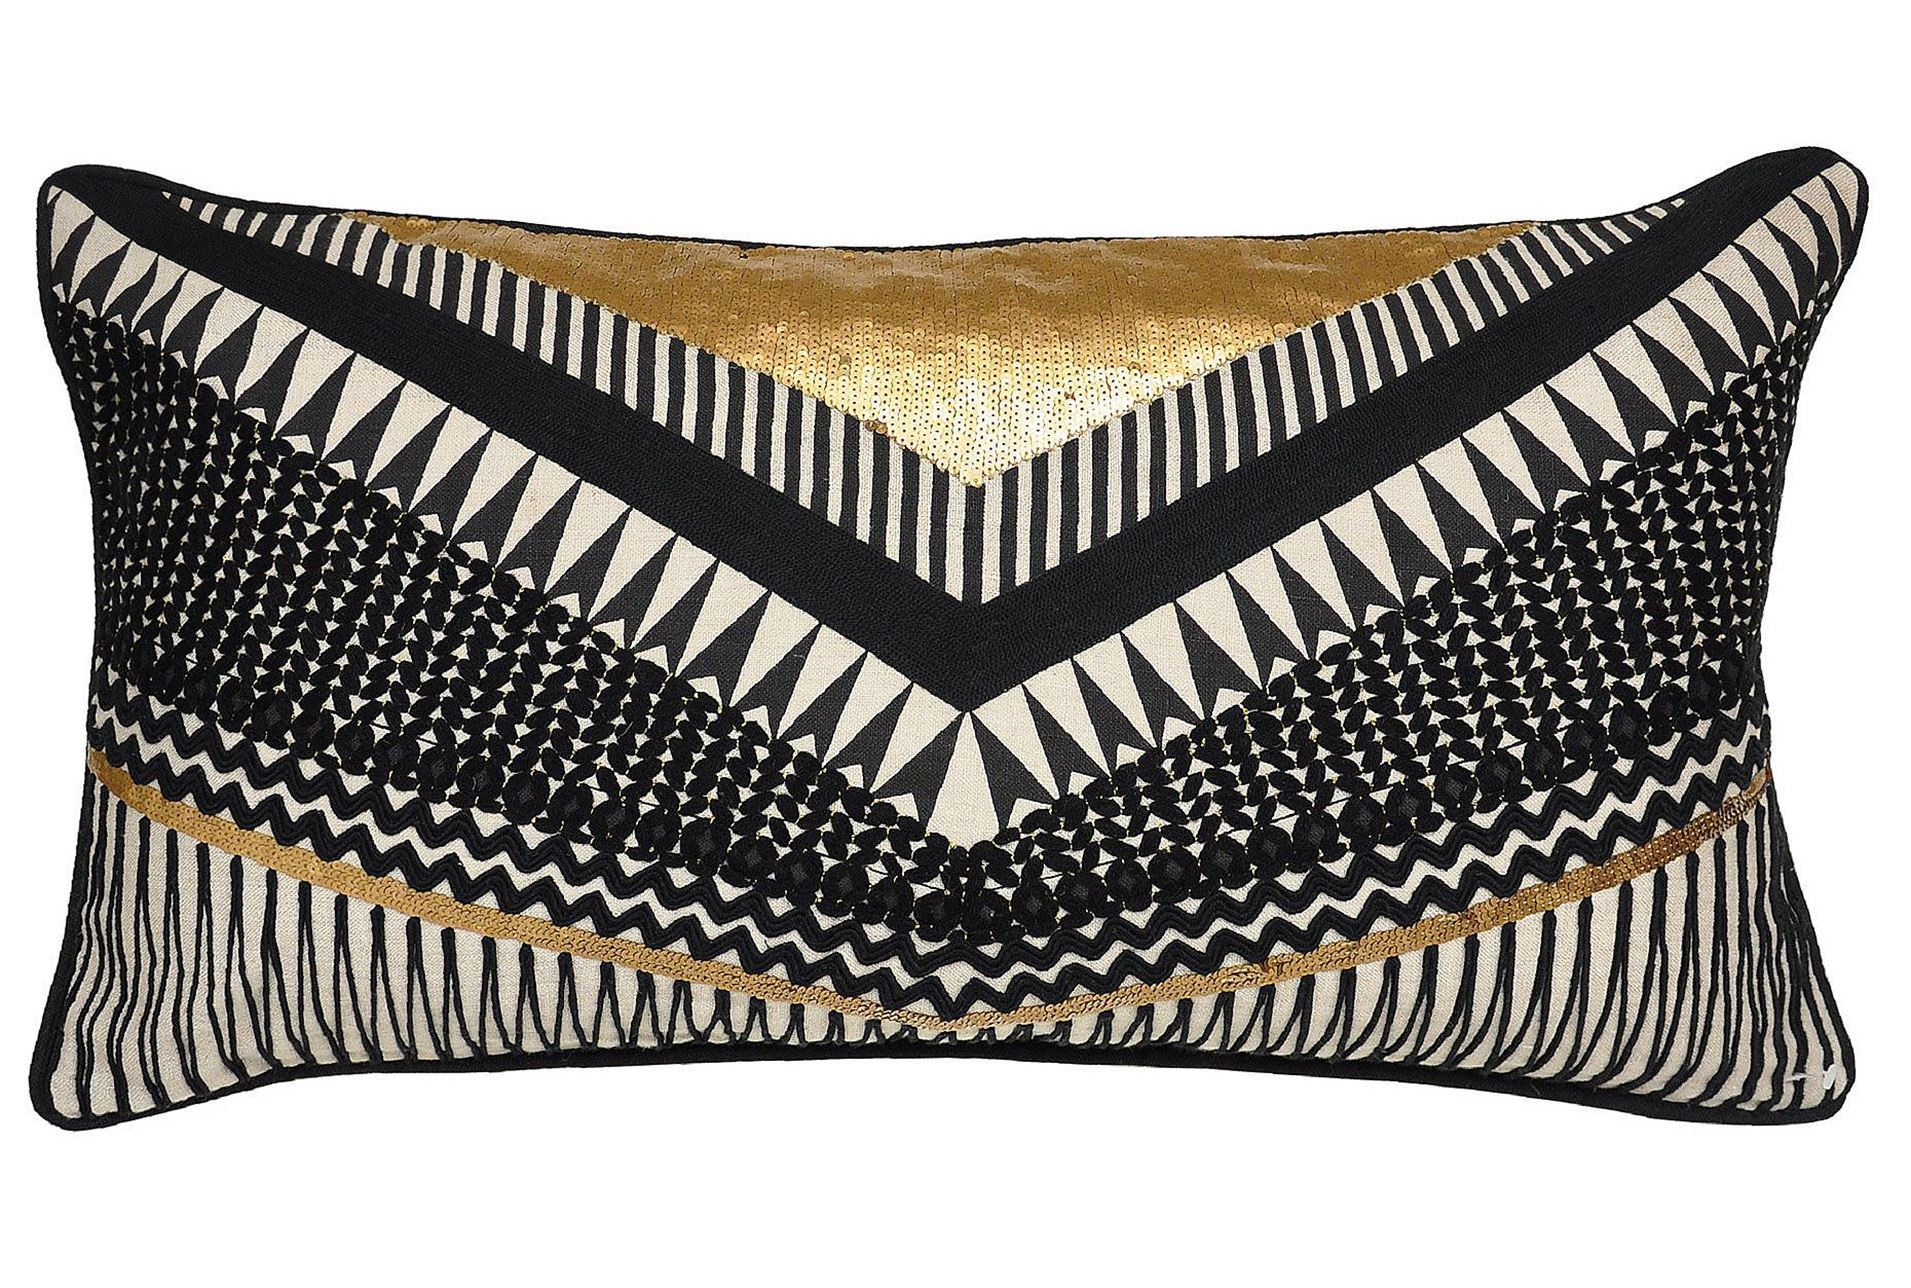 Decorative Pillows Black And Gold : Accent Pillow-Nico Chevron Black/Gold 14X26 - Living Spaces